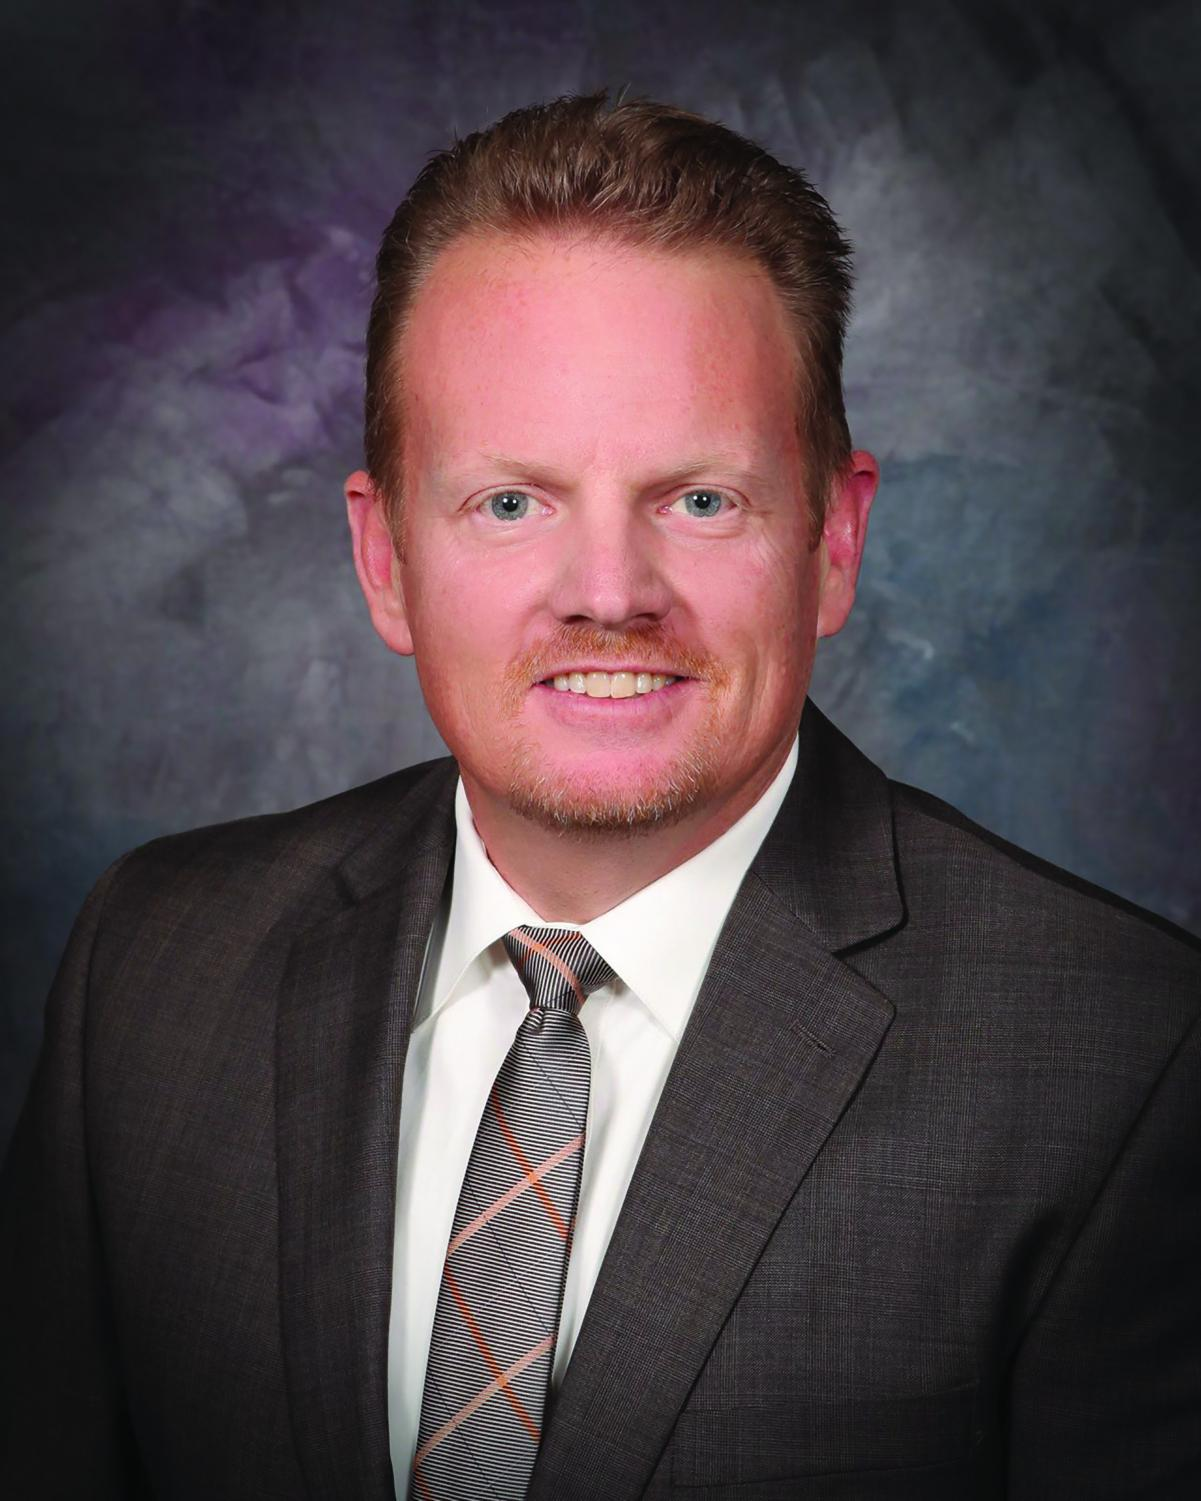 Dr. Collyn Nielsen has served as an administrator for 18.5 years at Hart High School, with his first year in 1998.